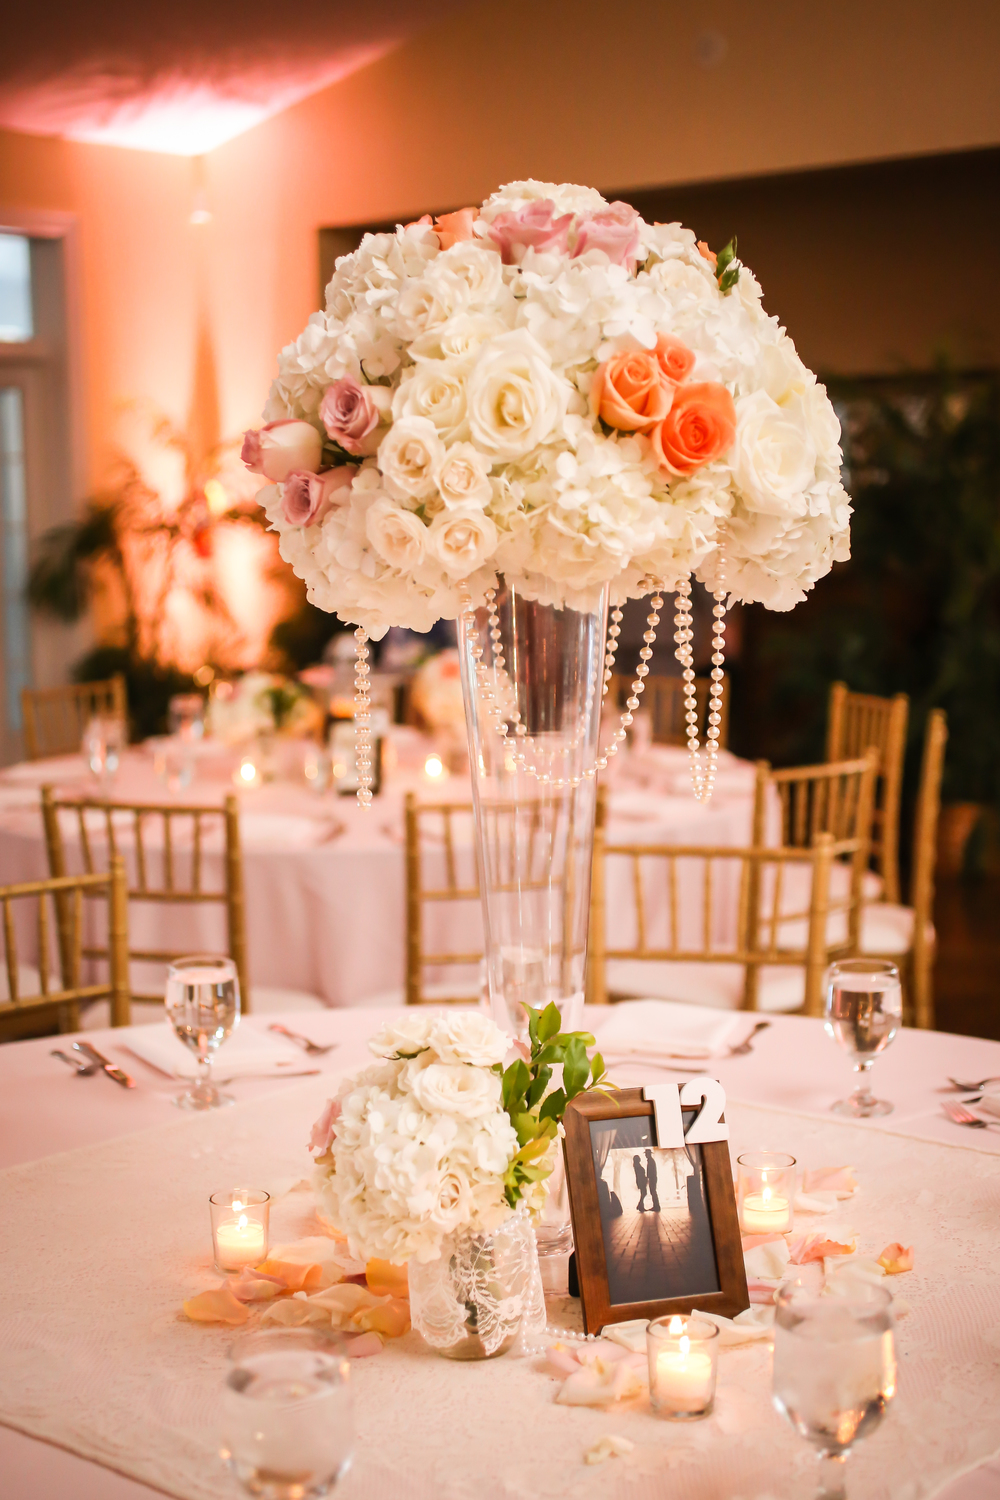 Centerpieces featured more strands of pearls cascading down from the abundent pastel roses and hydrangea